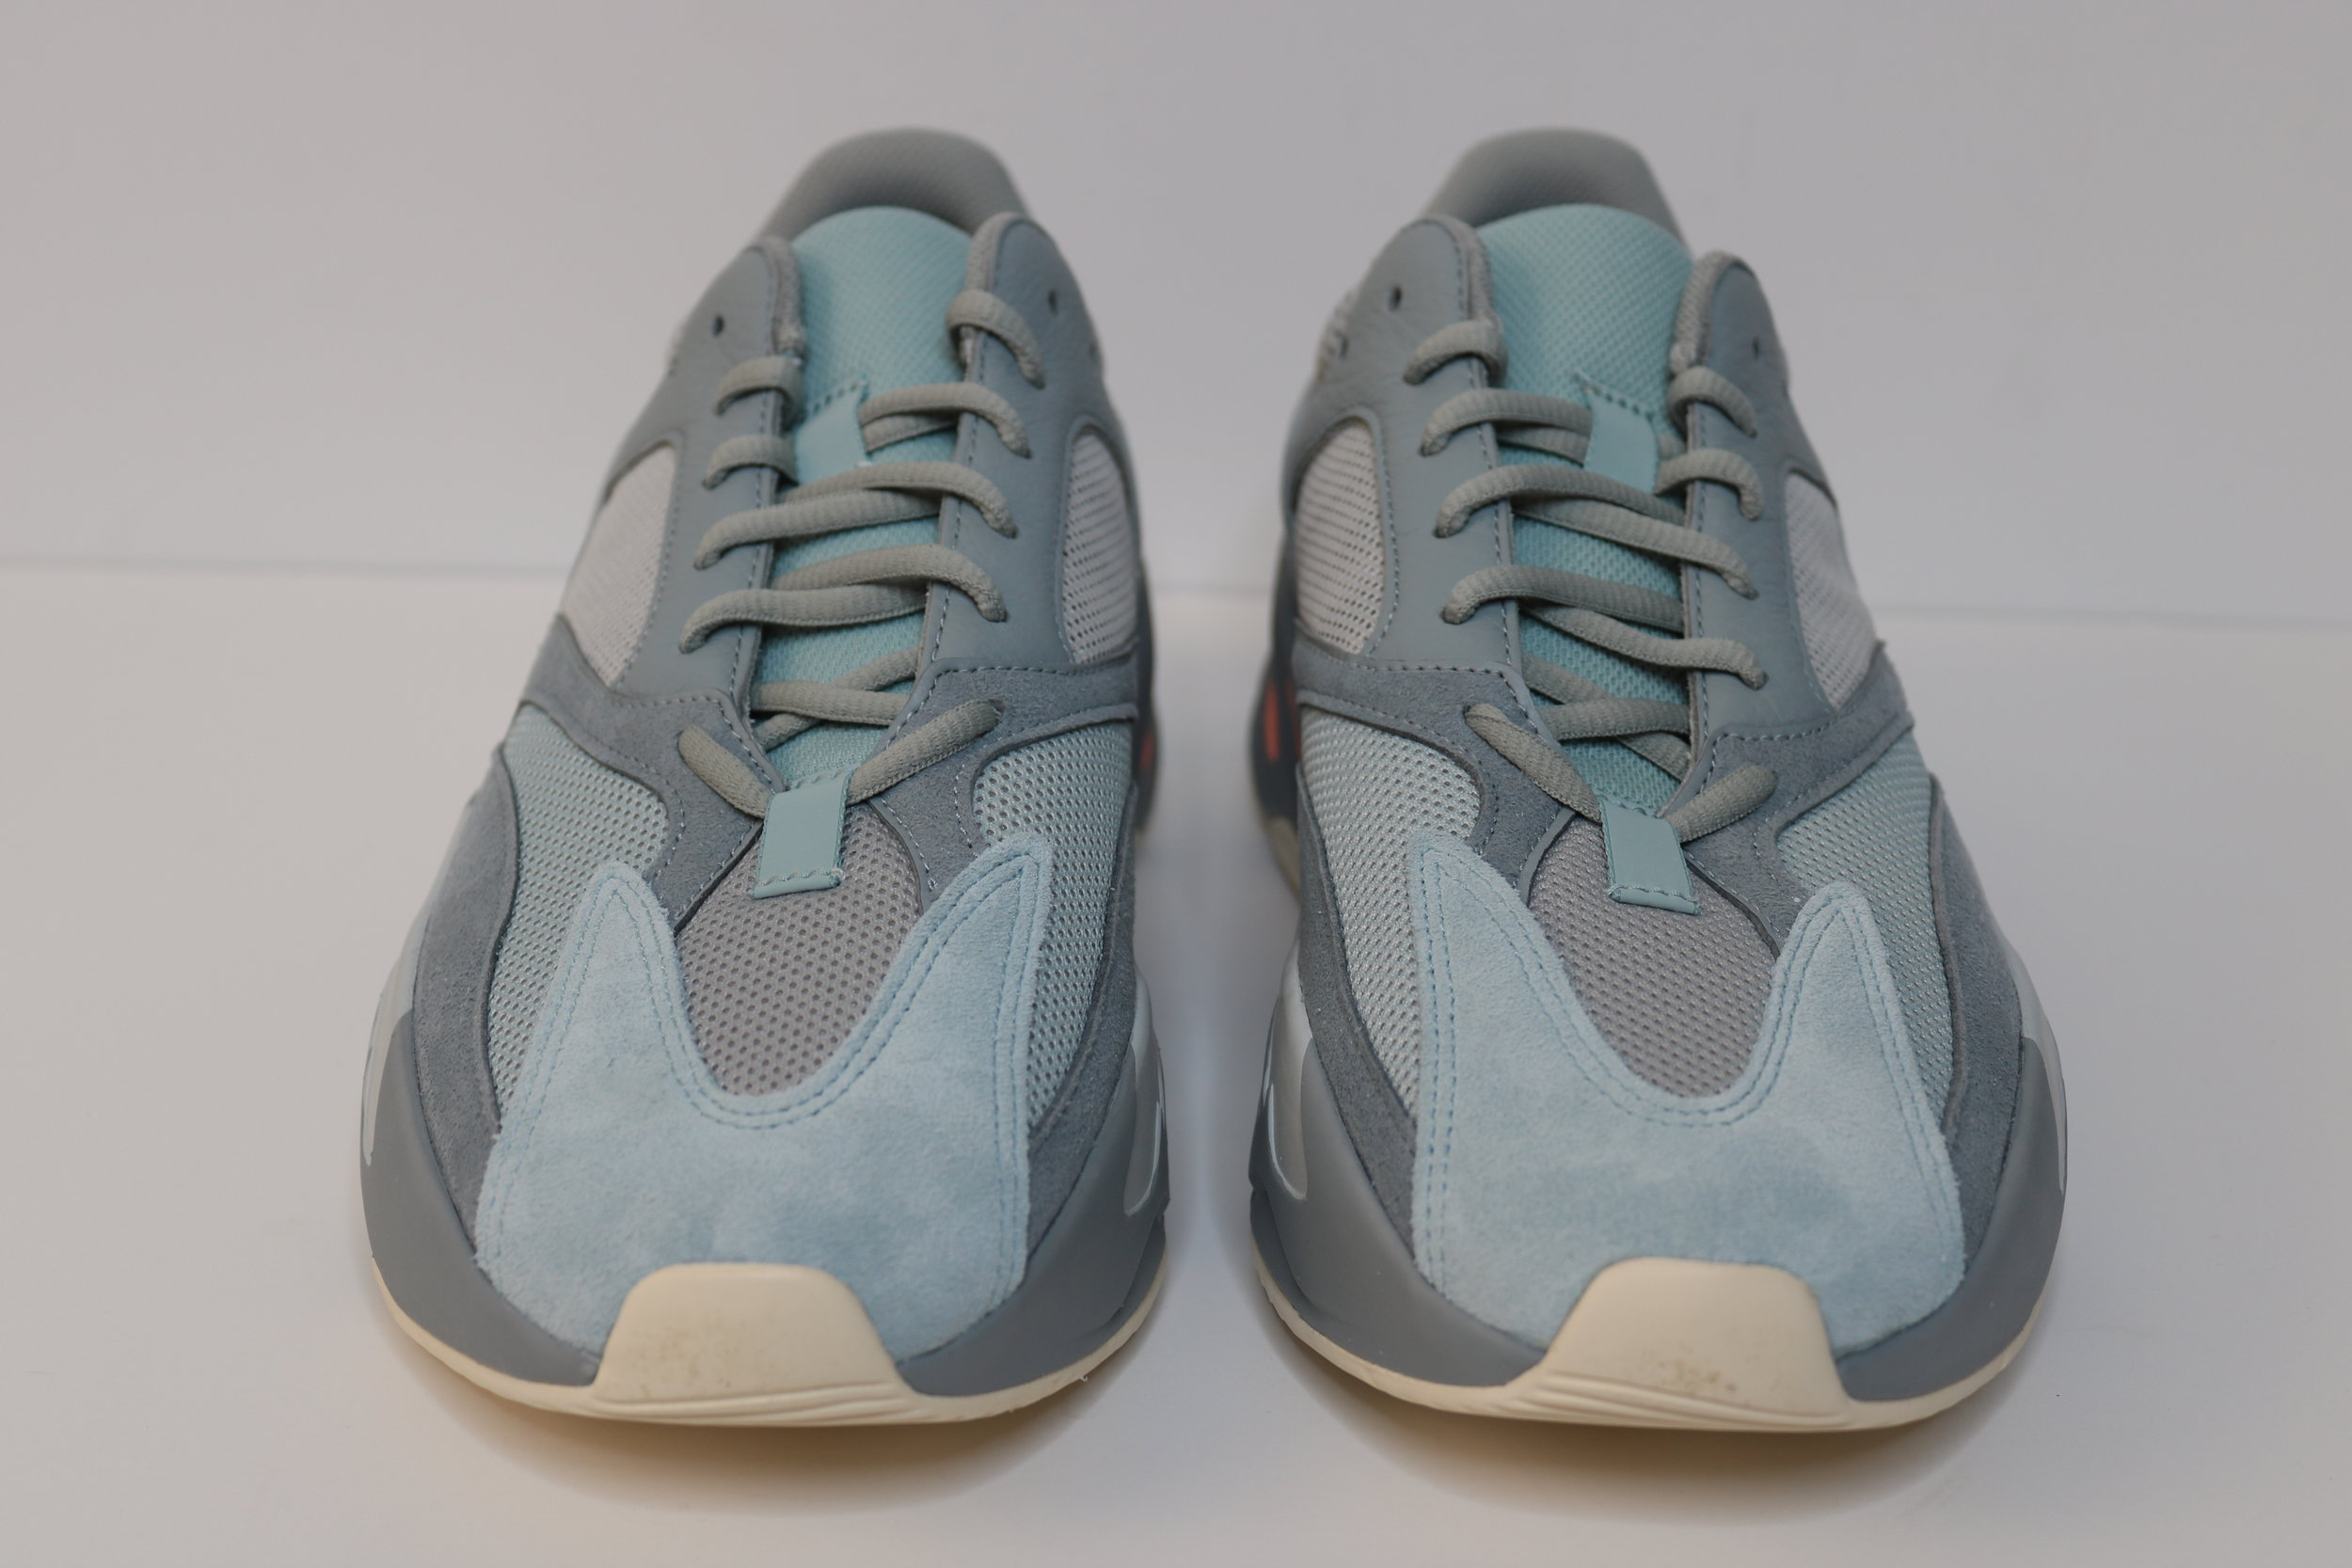 new products b0ca5 eb030 US 10.5 - ADIDAS YEEZY BOOST 700